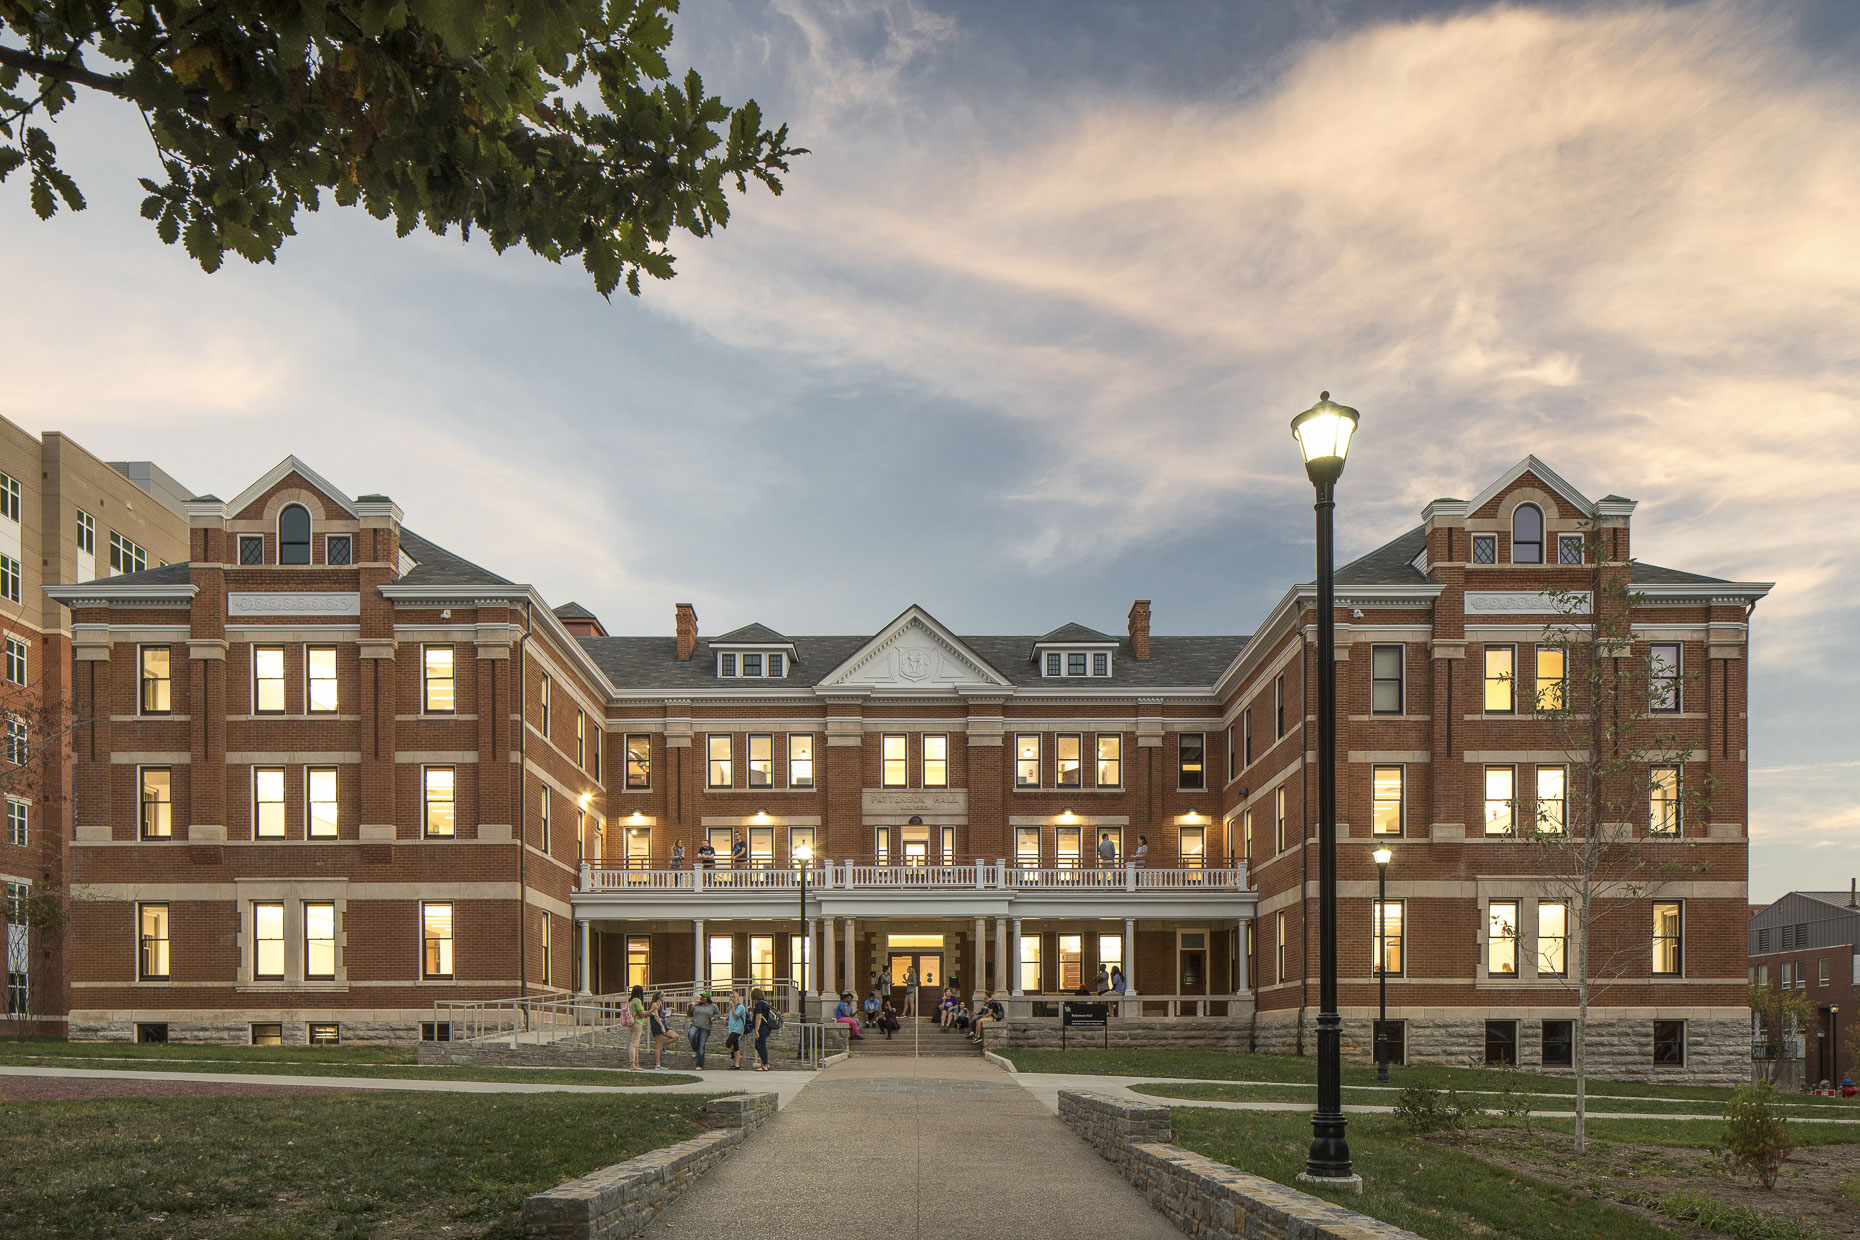 UK Patterson Hall